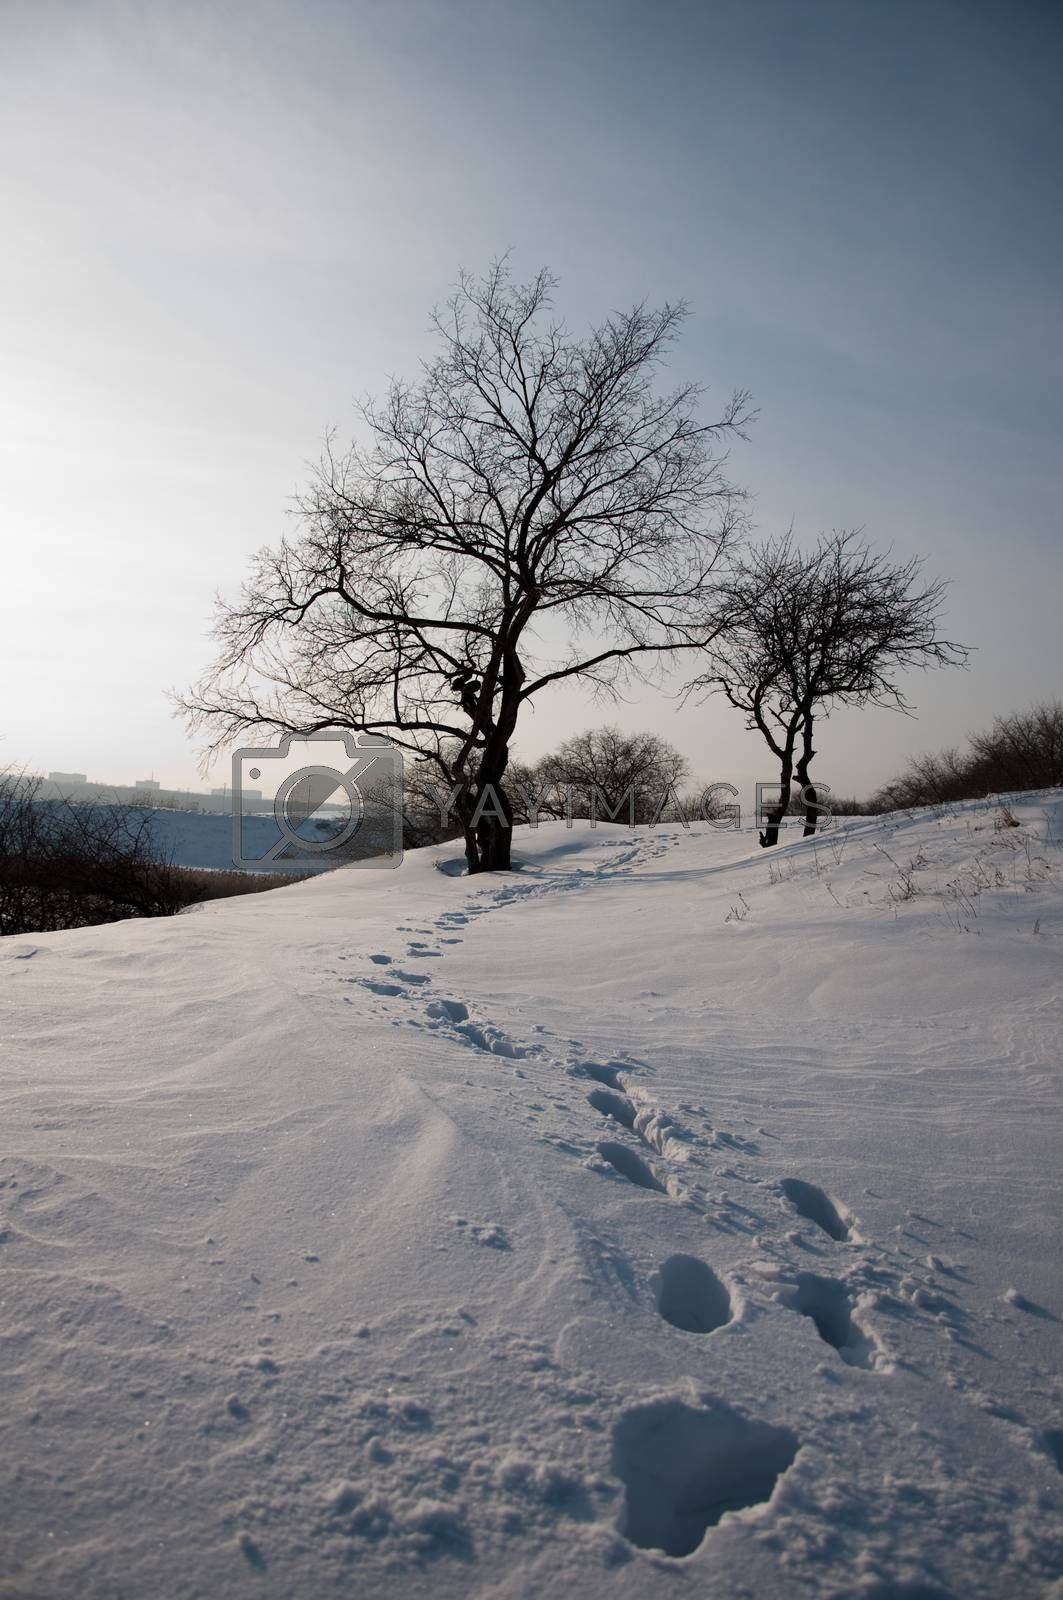 marks of person walking on snow field with tree as background winter